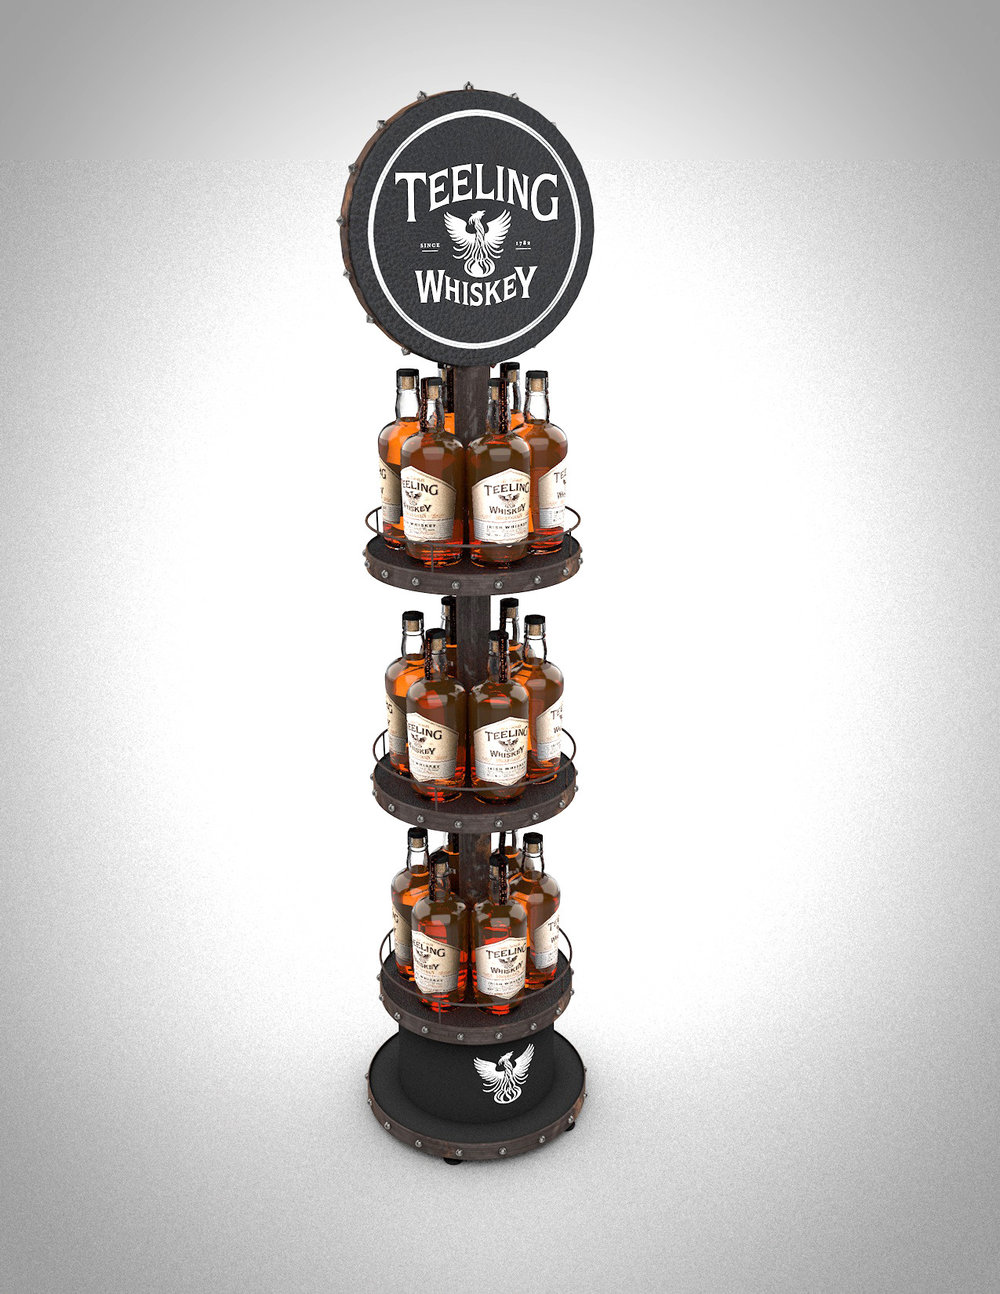 Teeling Whiskey Floorstand 2.jpg